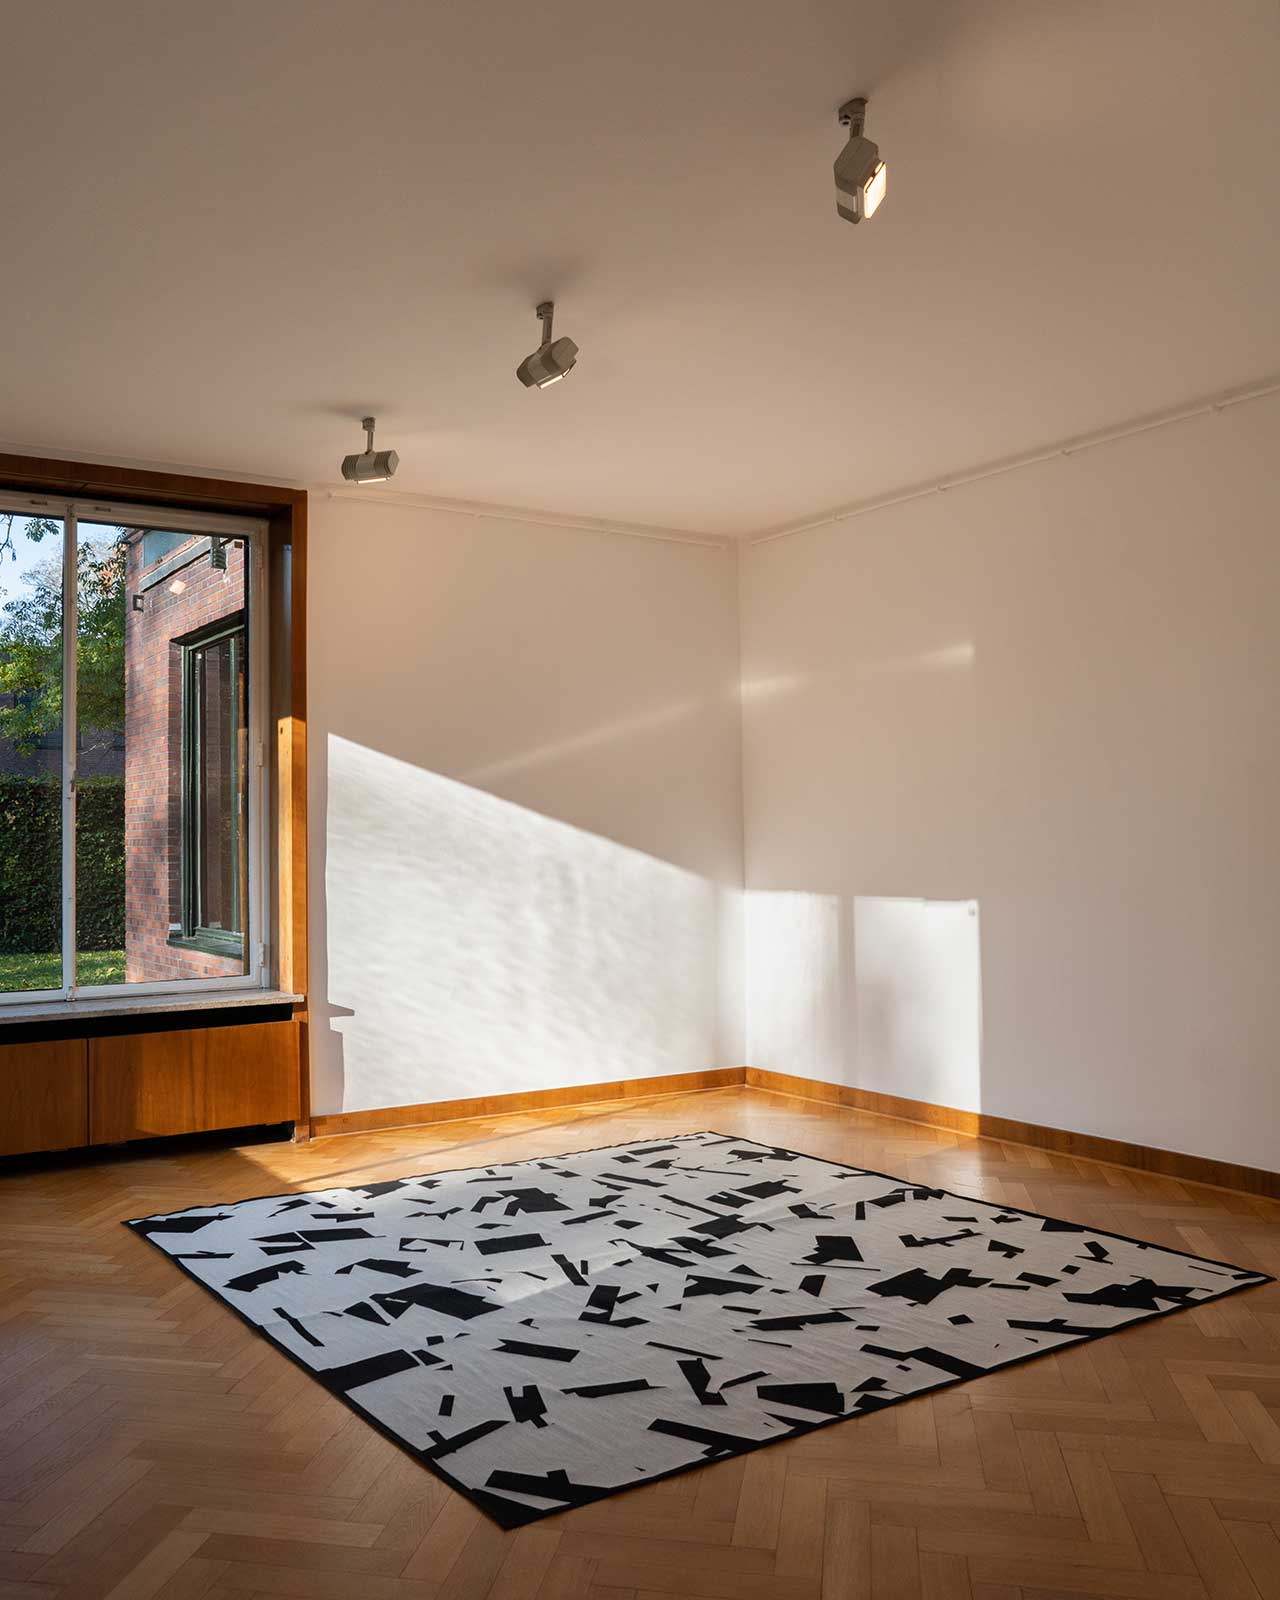 Bot 05, Anders Wohnen, Haus Esters, Exhibition View, 2019, Foto by Hehl